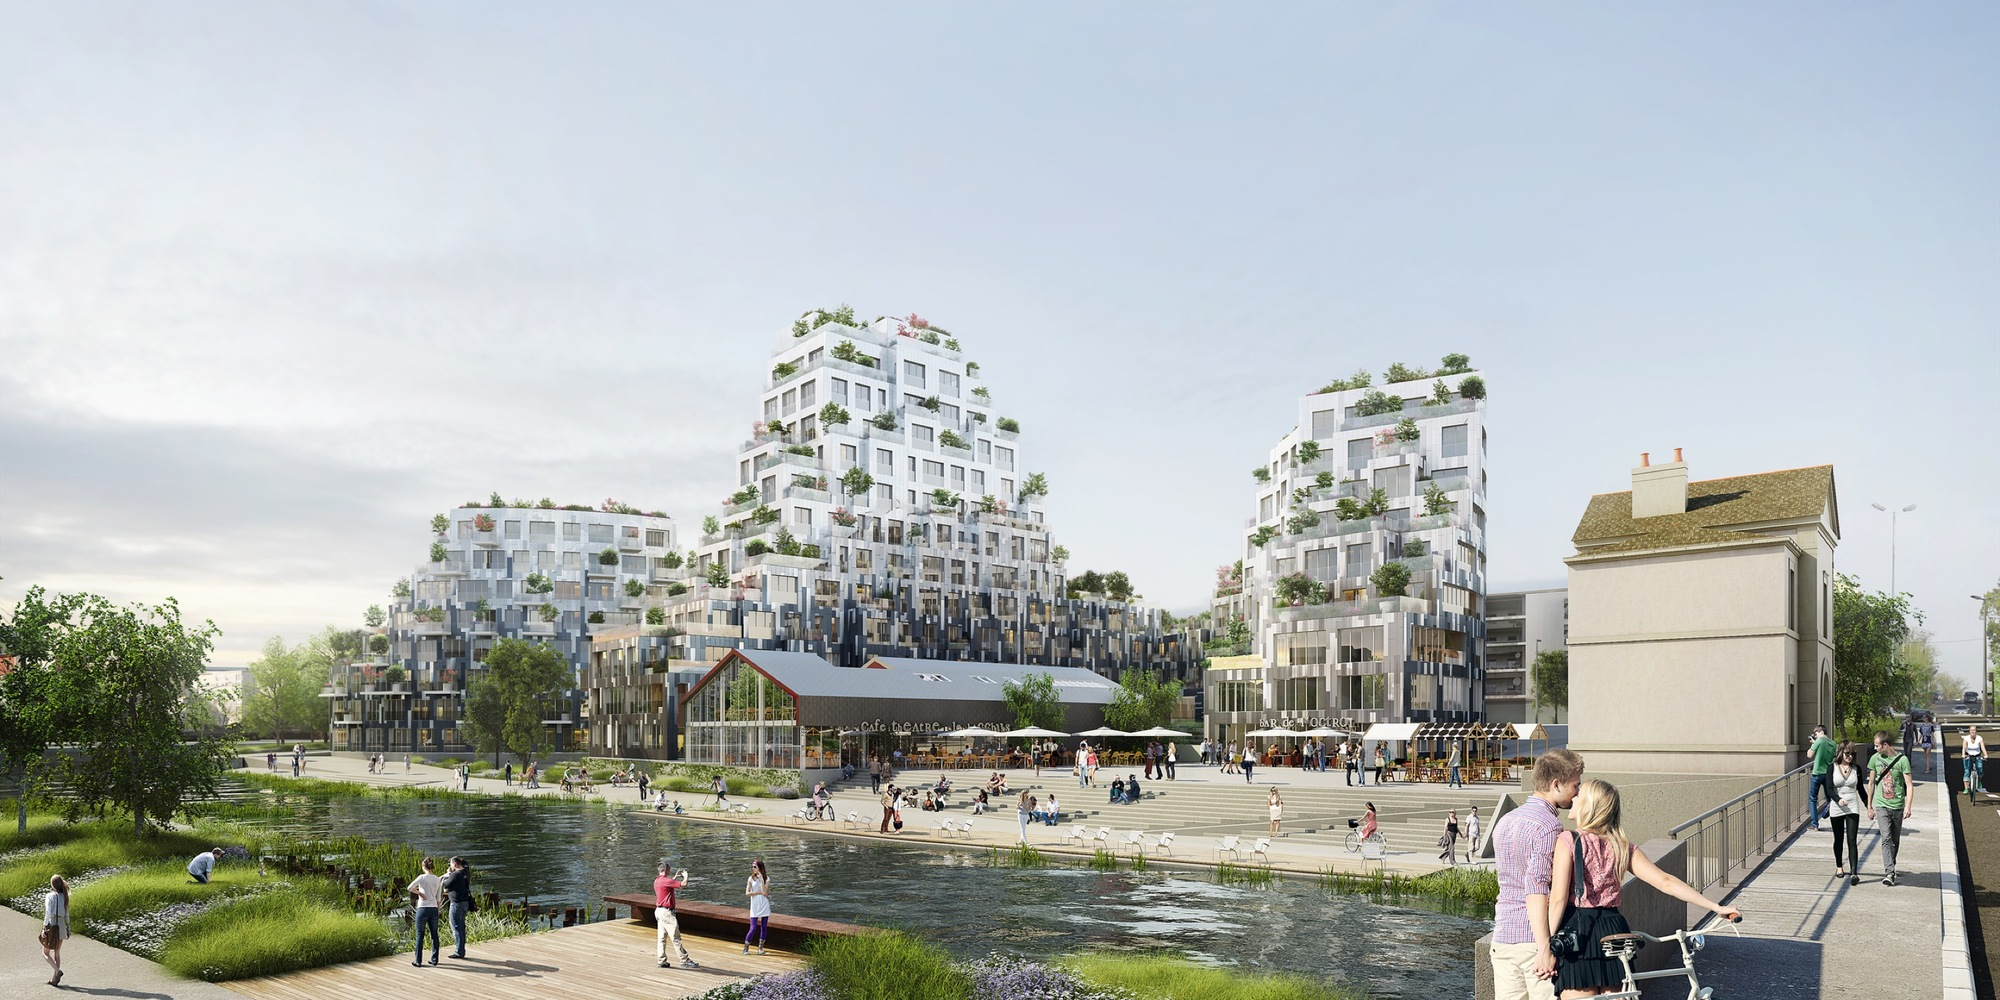 Rennes Architecture Mvrdv Wins Competition In France With Residential